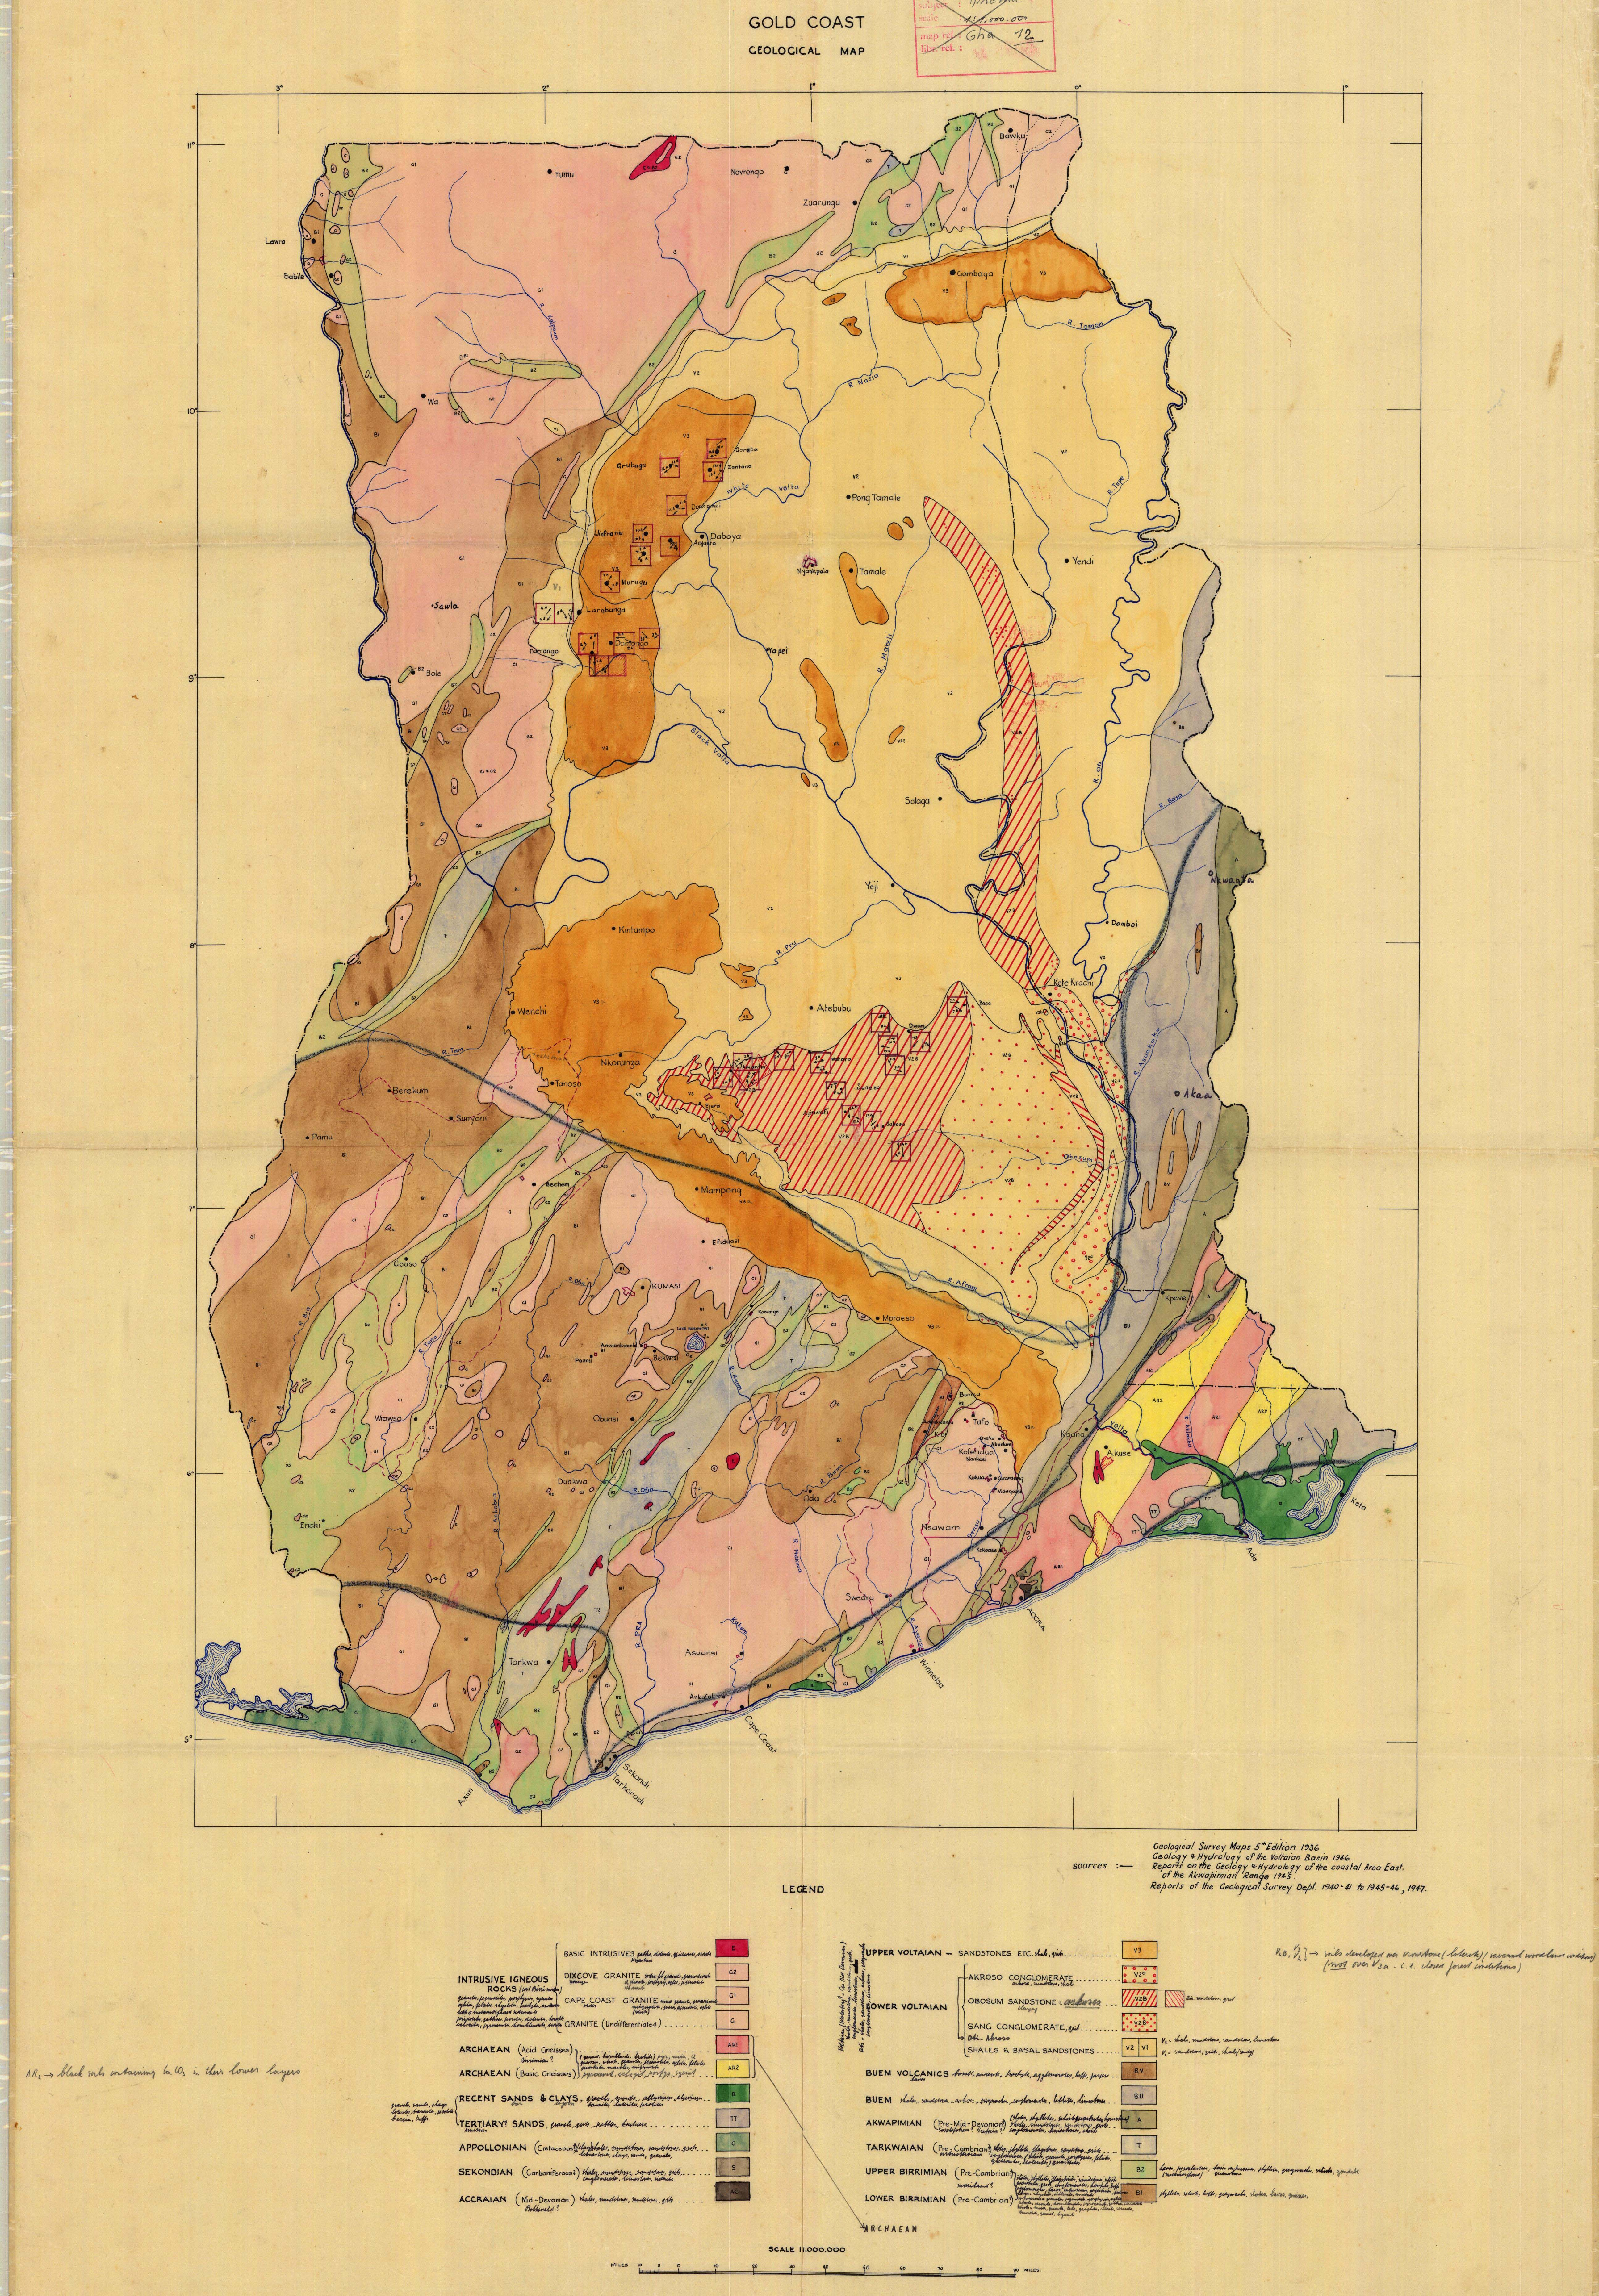 The soil maps of Africa - Display Maps Ghana Map Of Drainage on geological map of ghana, elevation map of ghana, vegetation map of ghana, relief map of ghana, topographic map of ghana, road map of ghana, tourist map of ghana,